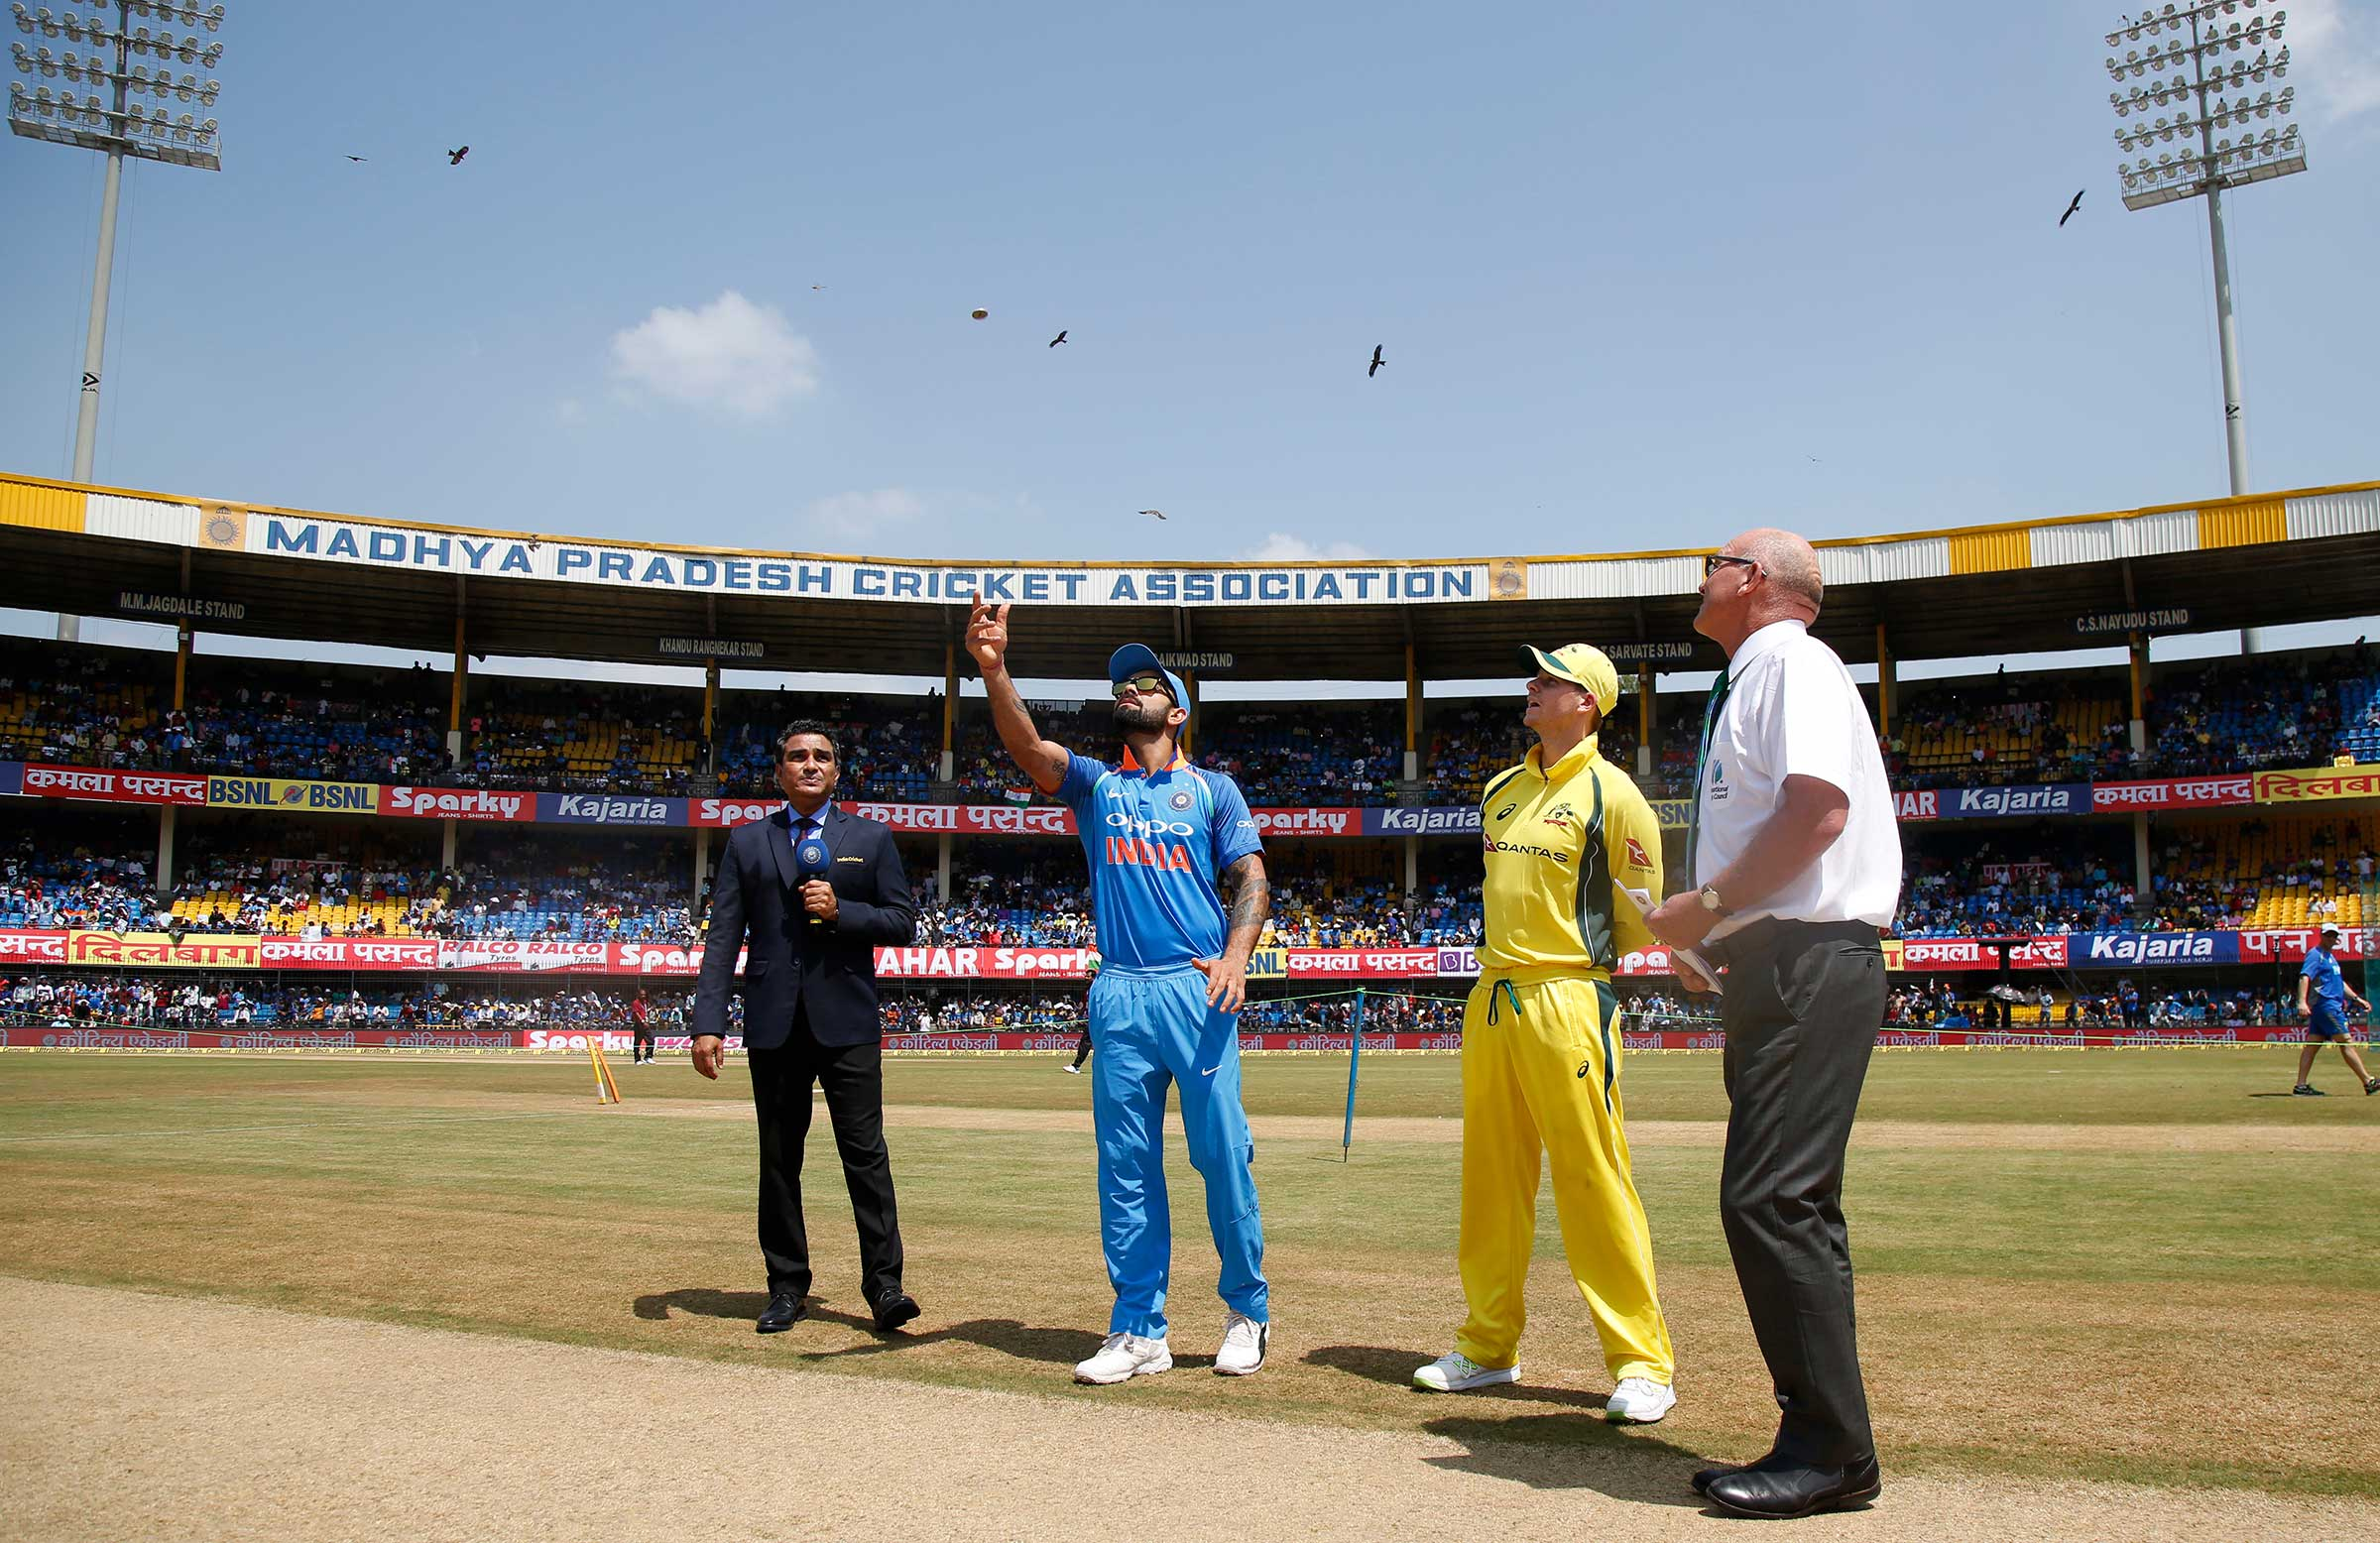 4th ODI: India to take on Australia in Bengaluru tomorrow